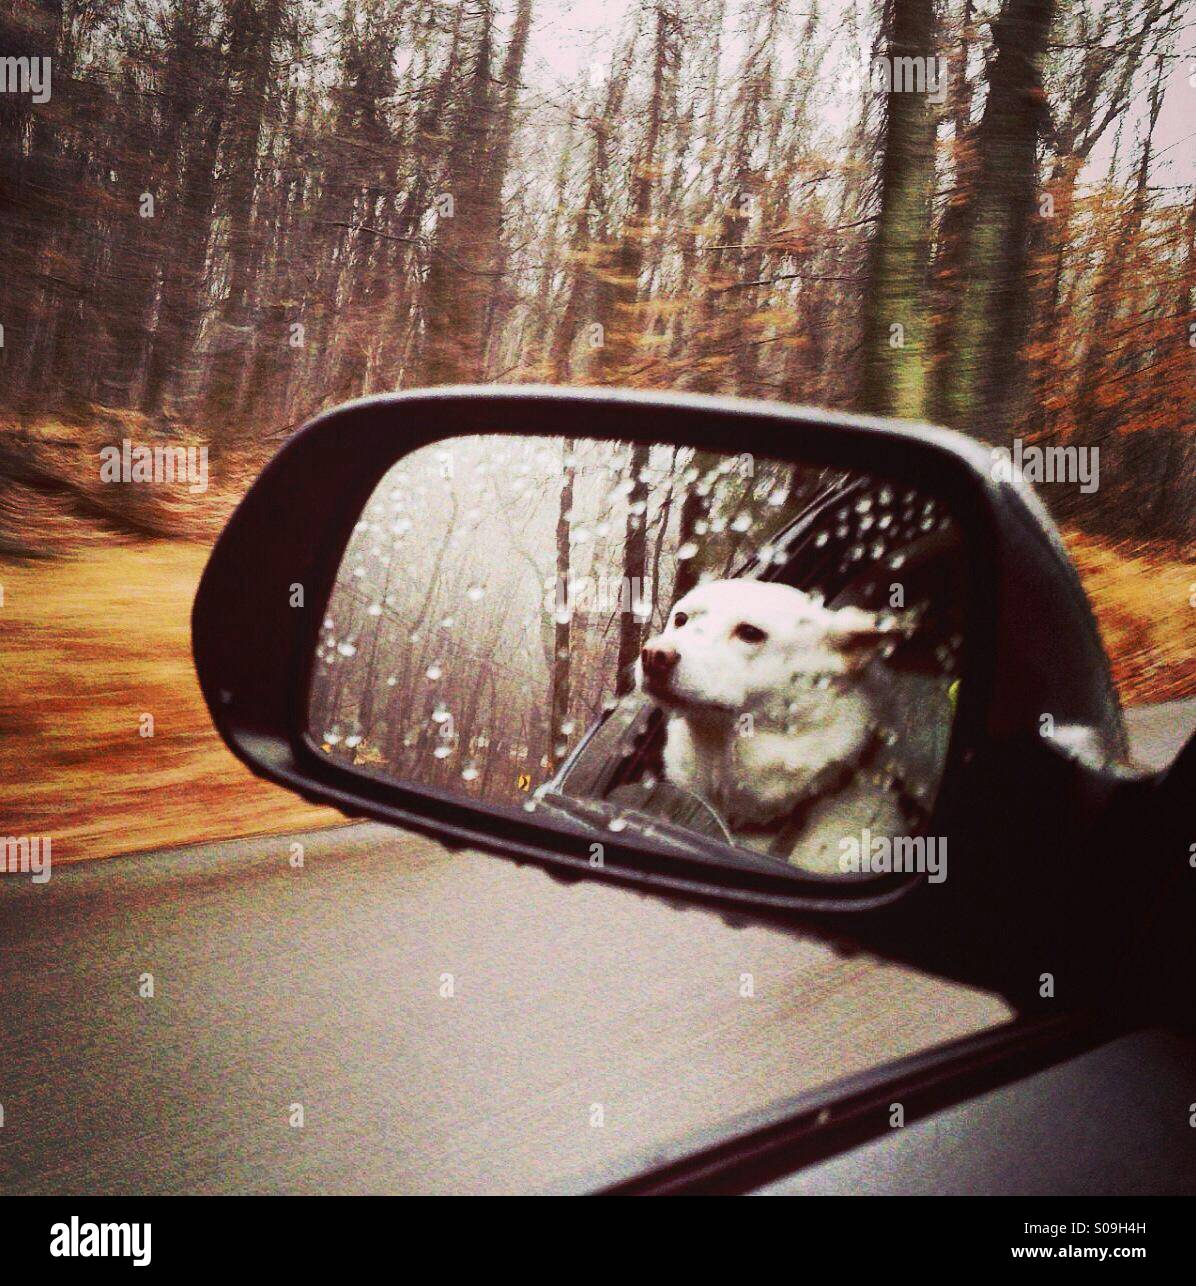 Dog in car reflection in rear view mirror - Stock Image